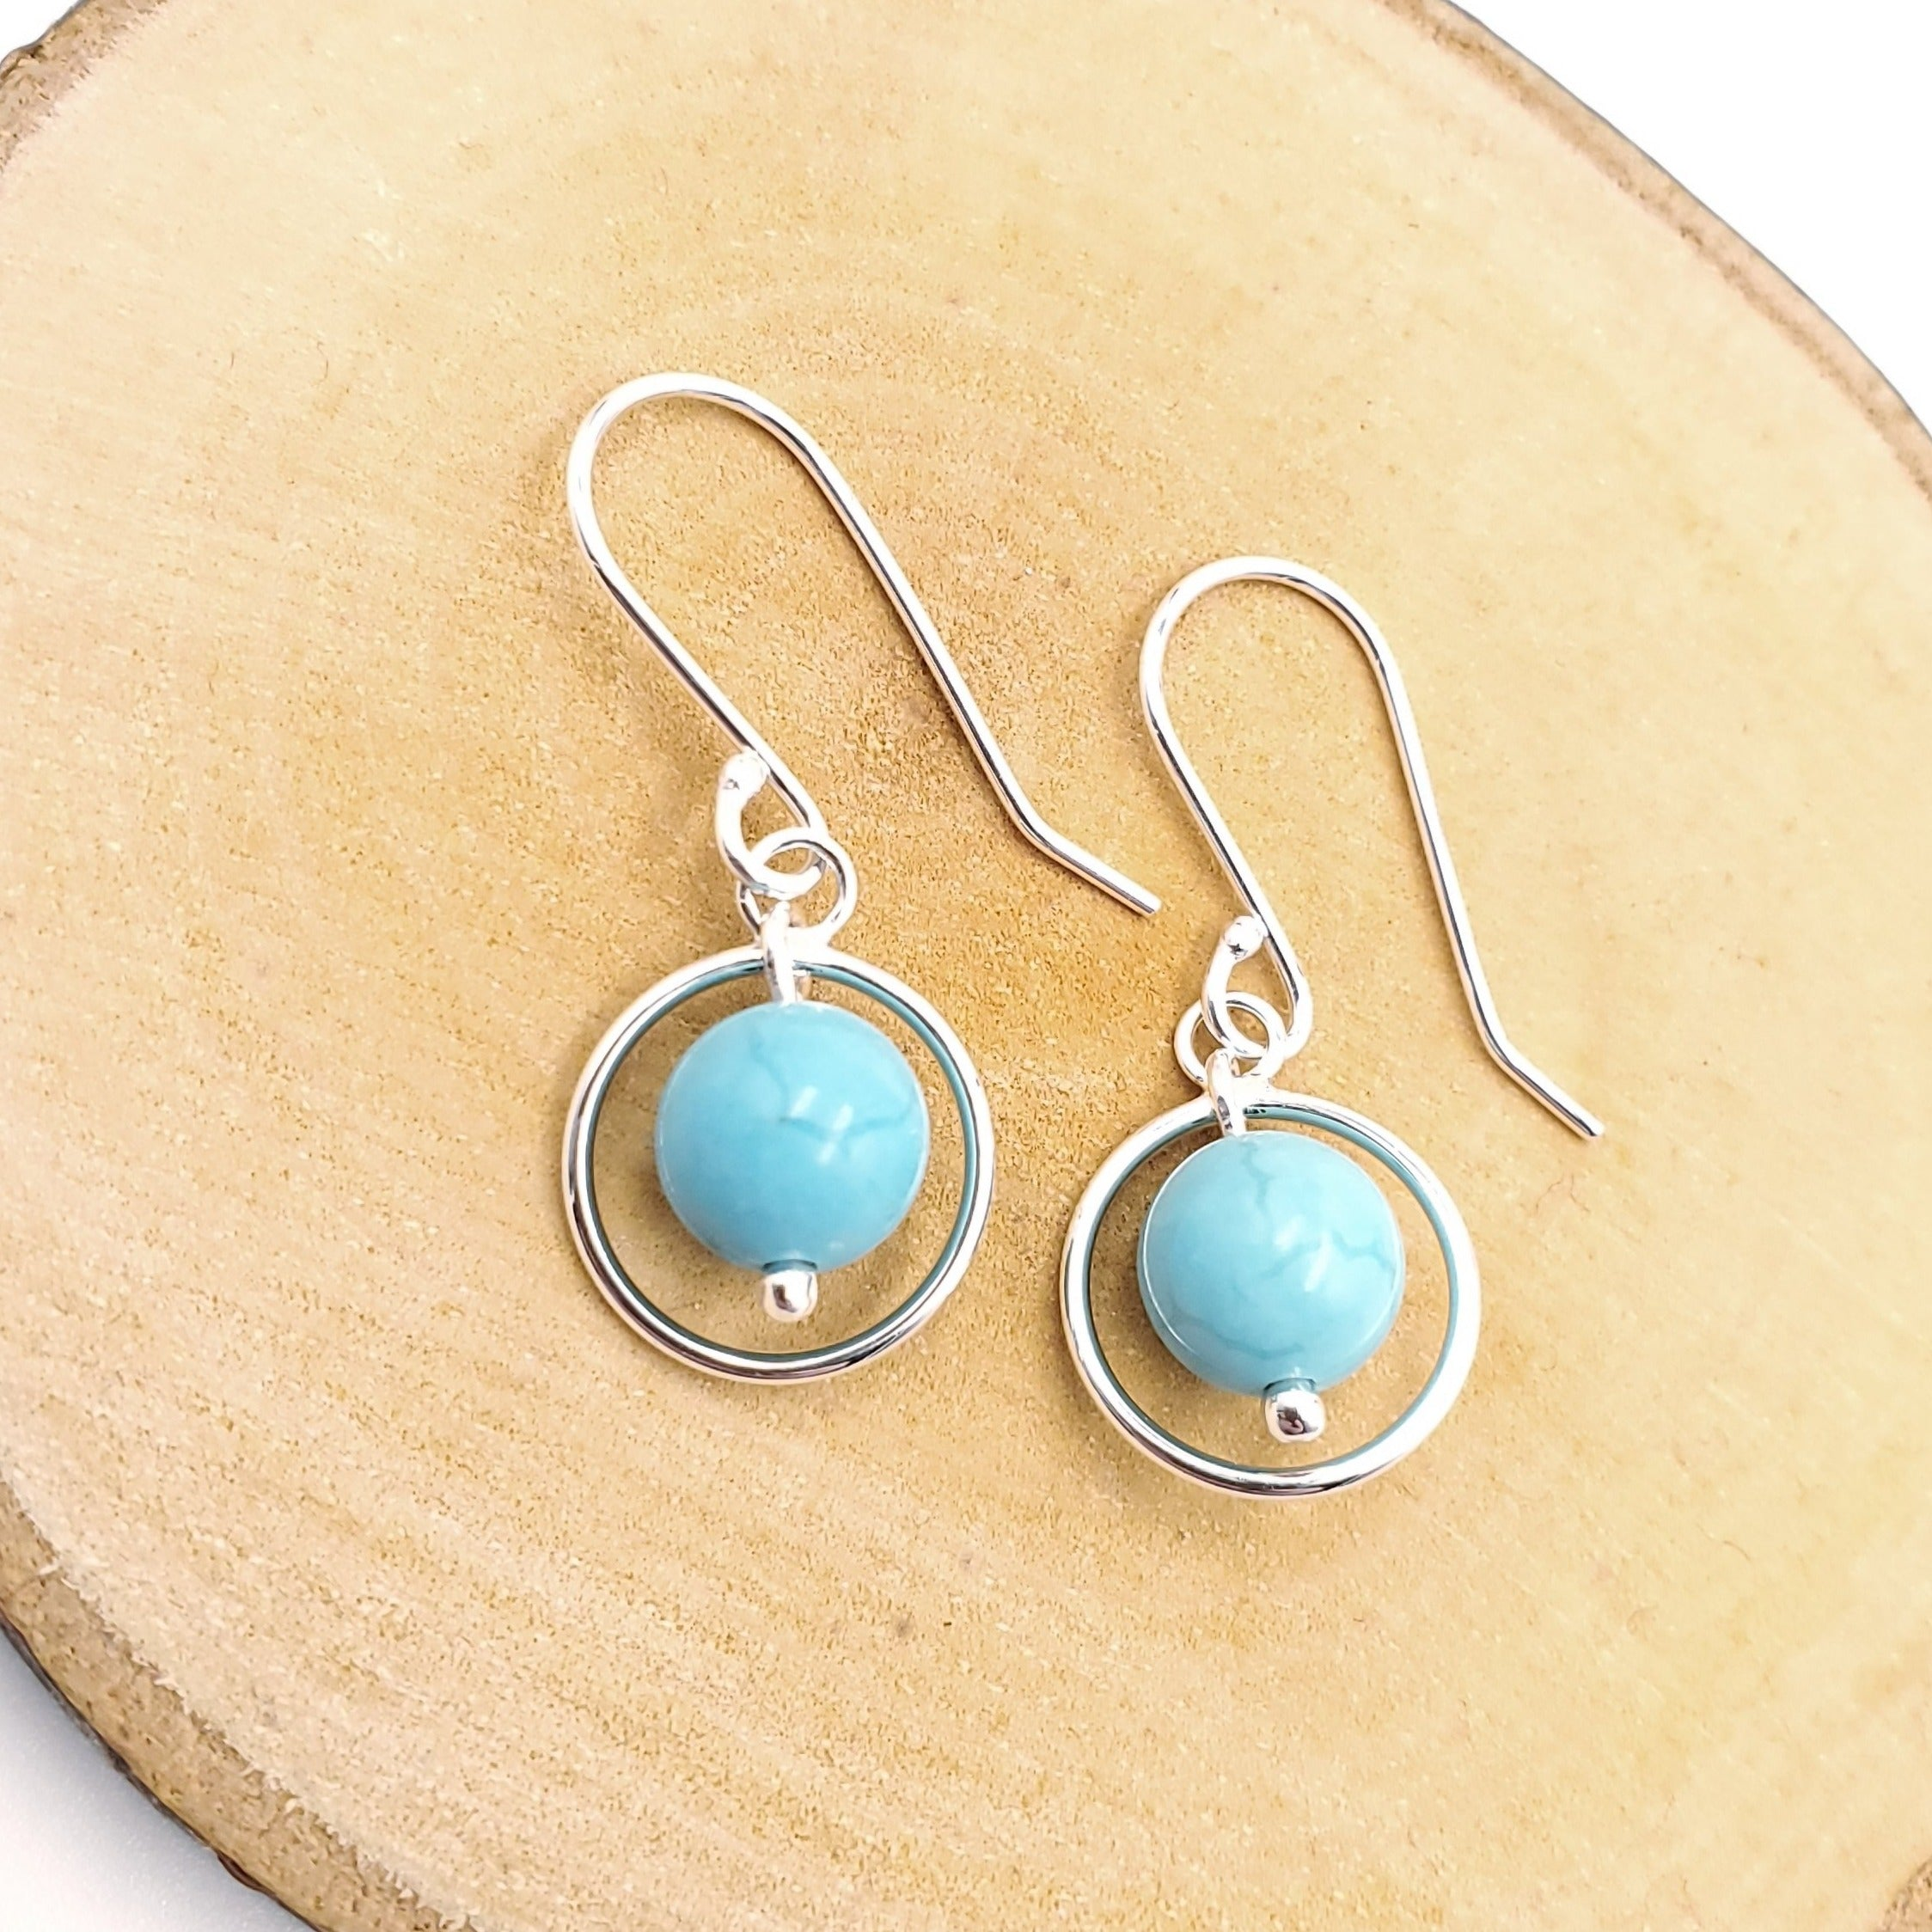 Round turquoise beads with silver circle border earrings